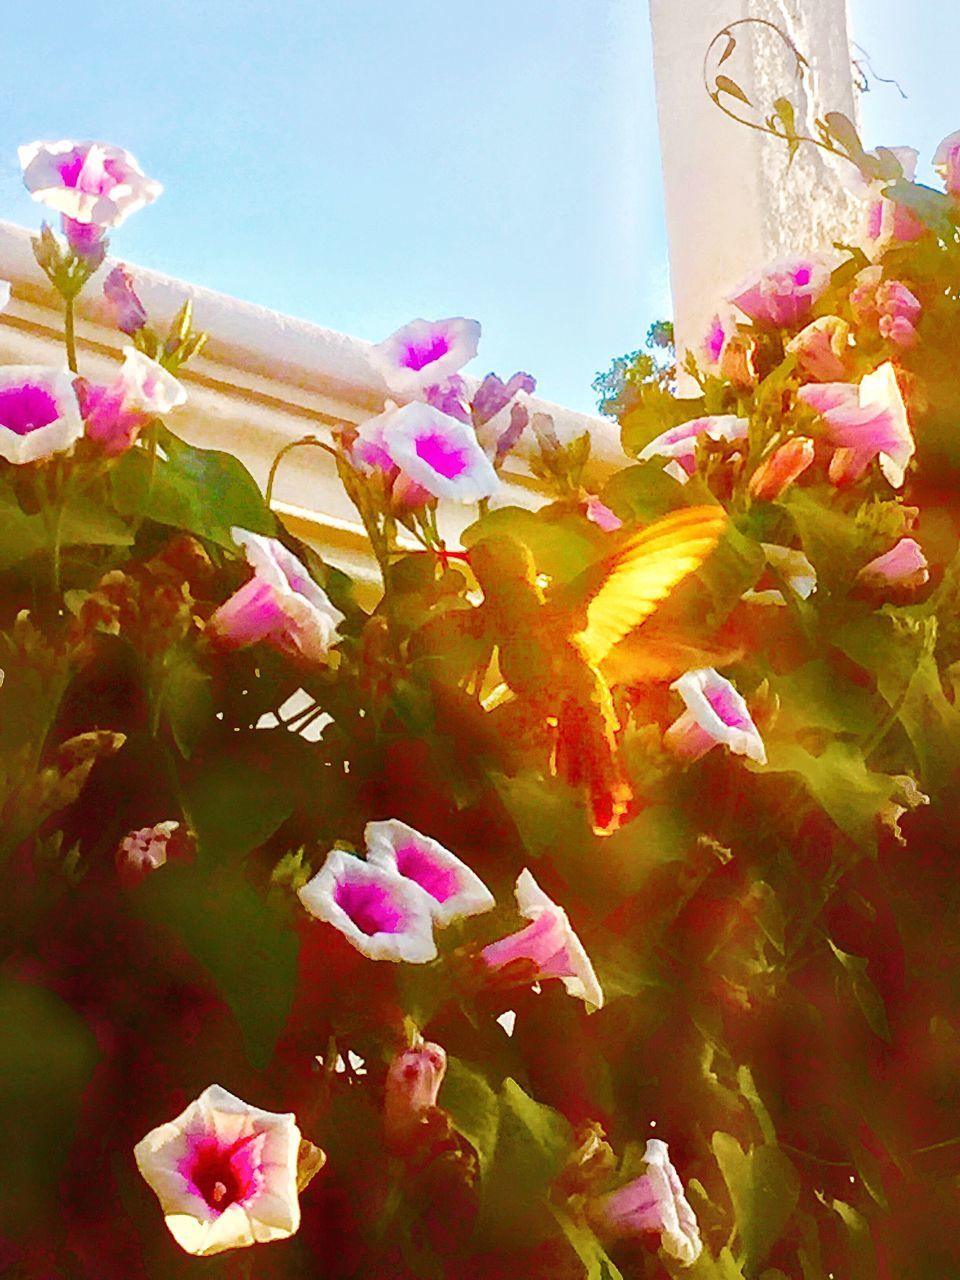 flower, petal, pink color, no people, fragility, day, nature, bougainvillea, outdoors, beauty in nature, low angle view, growth, plant, close-up, flower head, blooming, freshness, sky